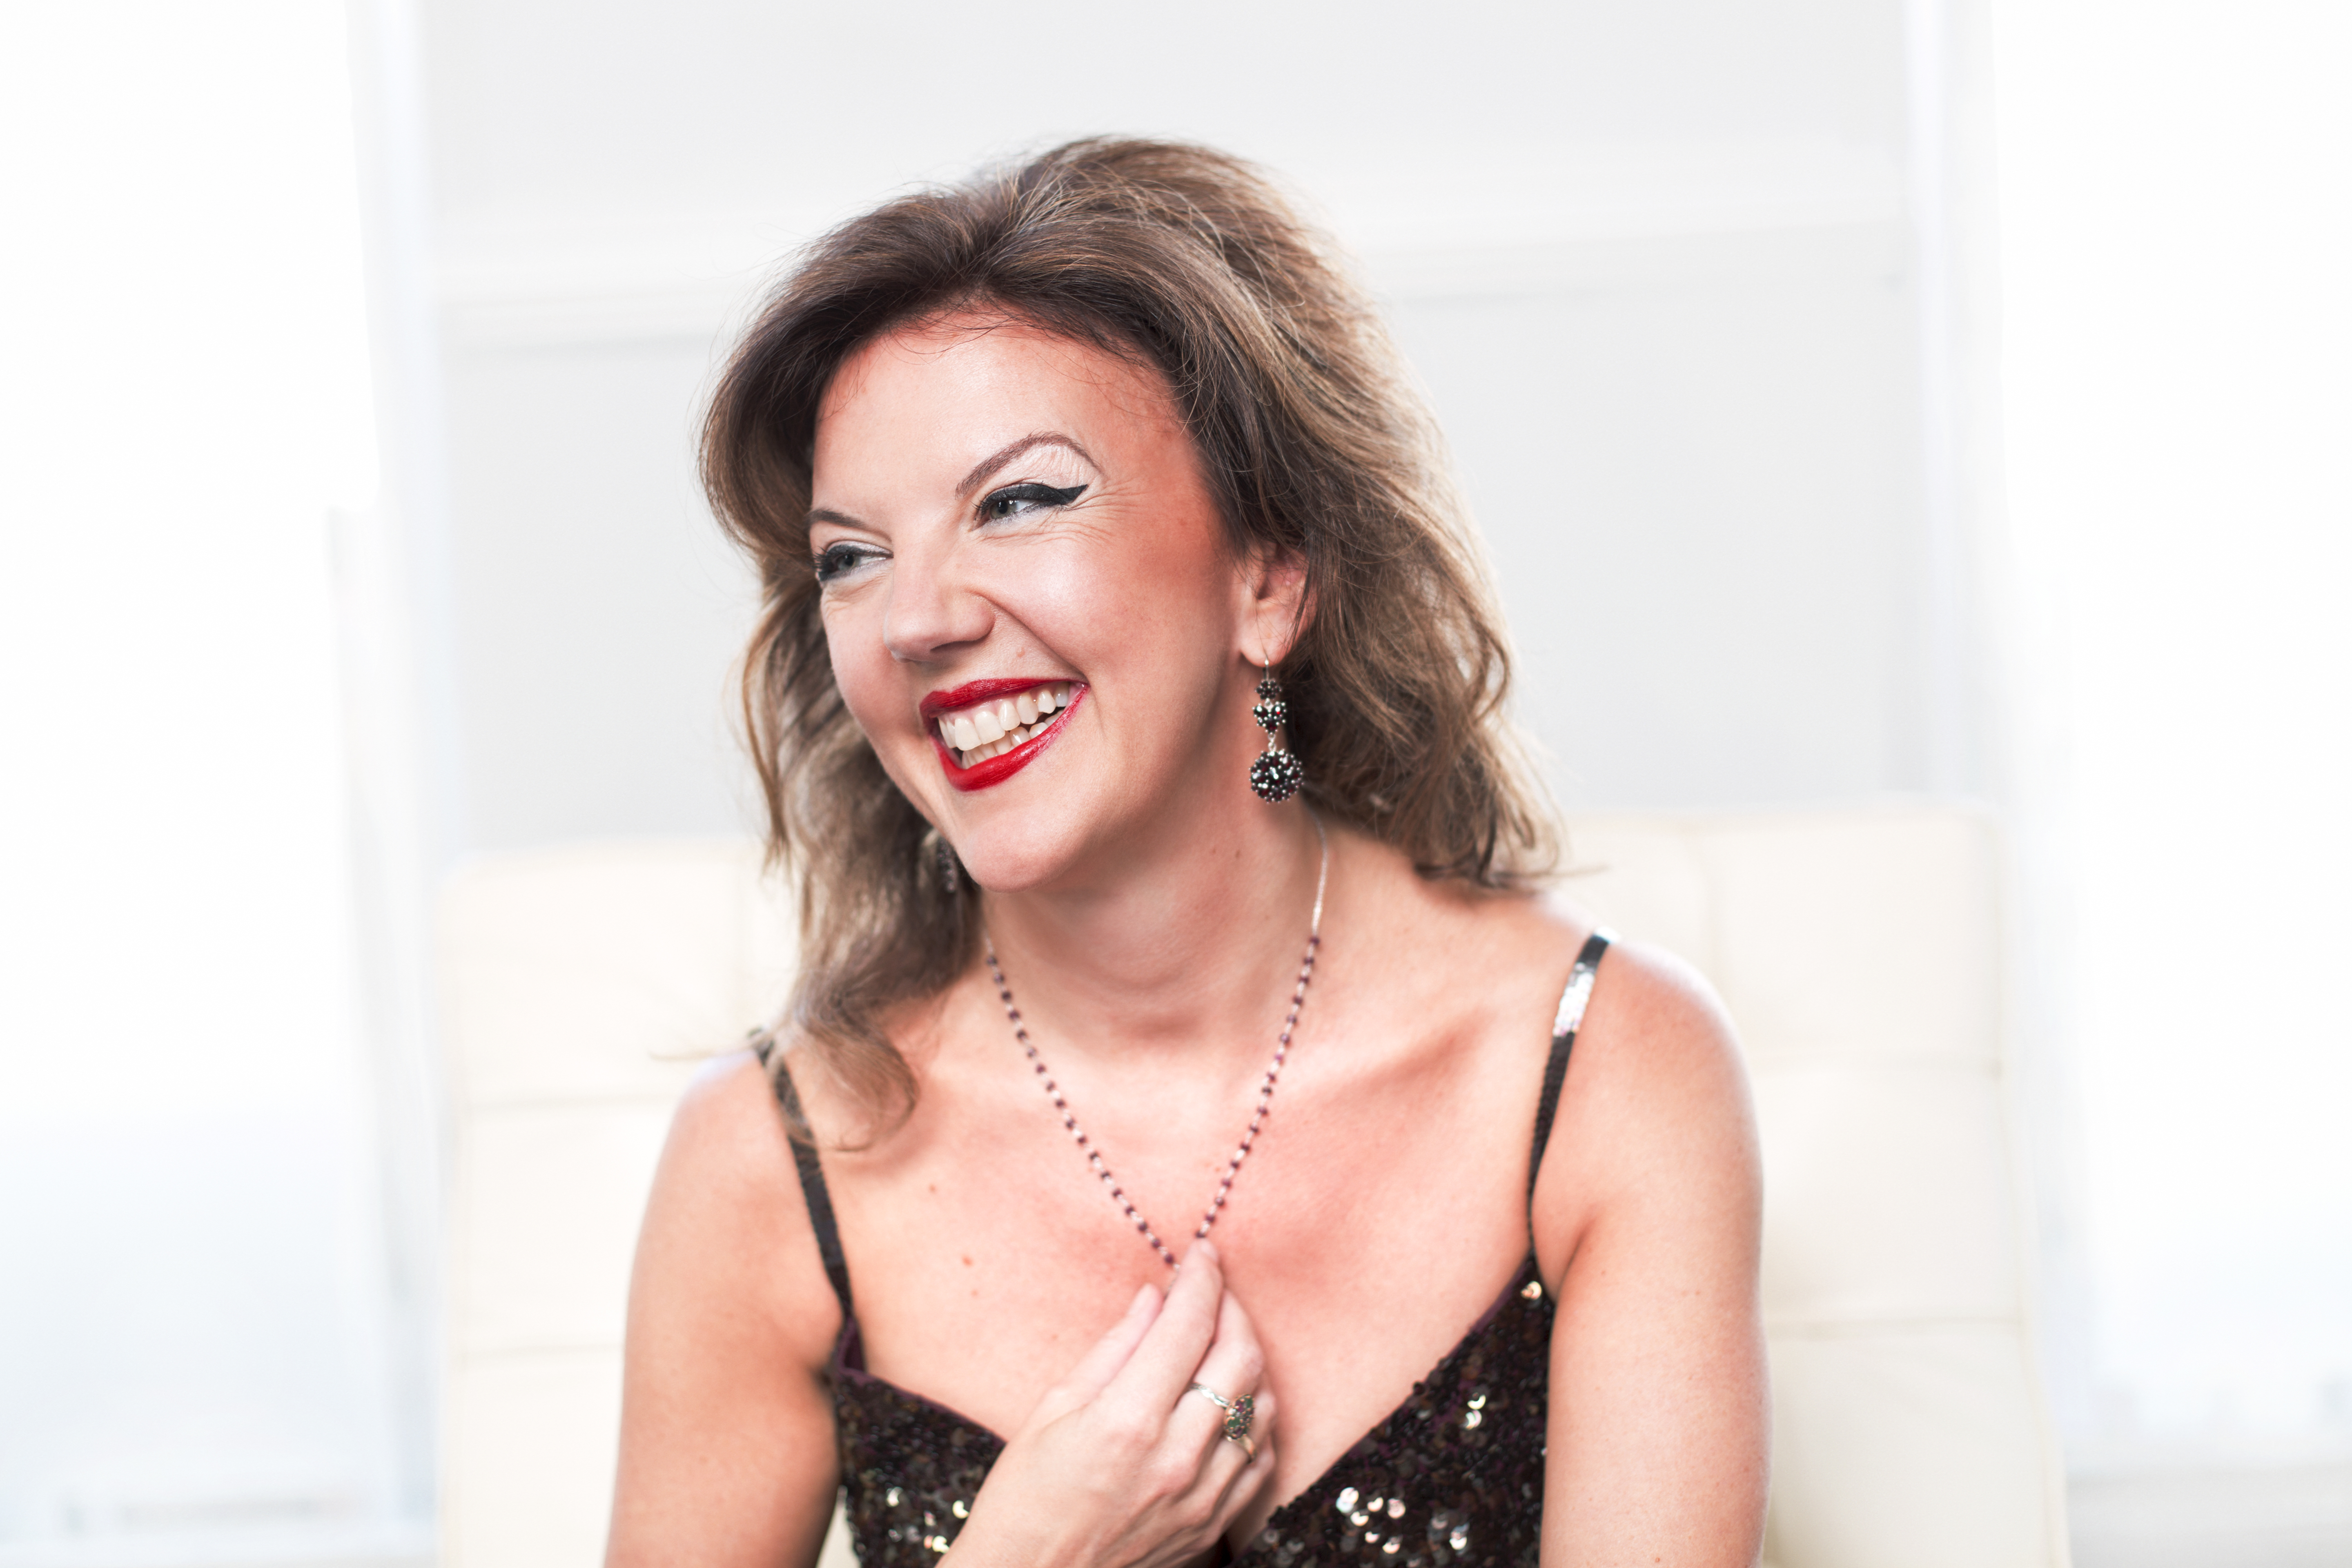 tasmin little photo credit b ealovega